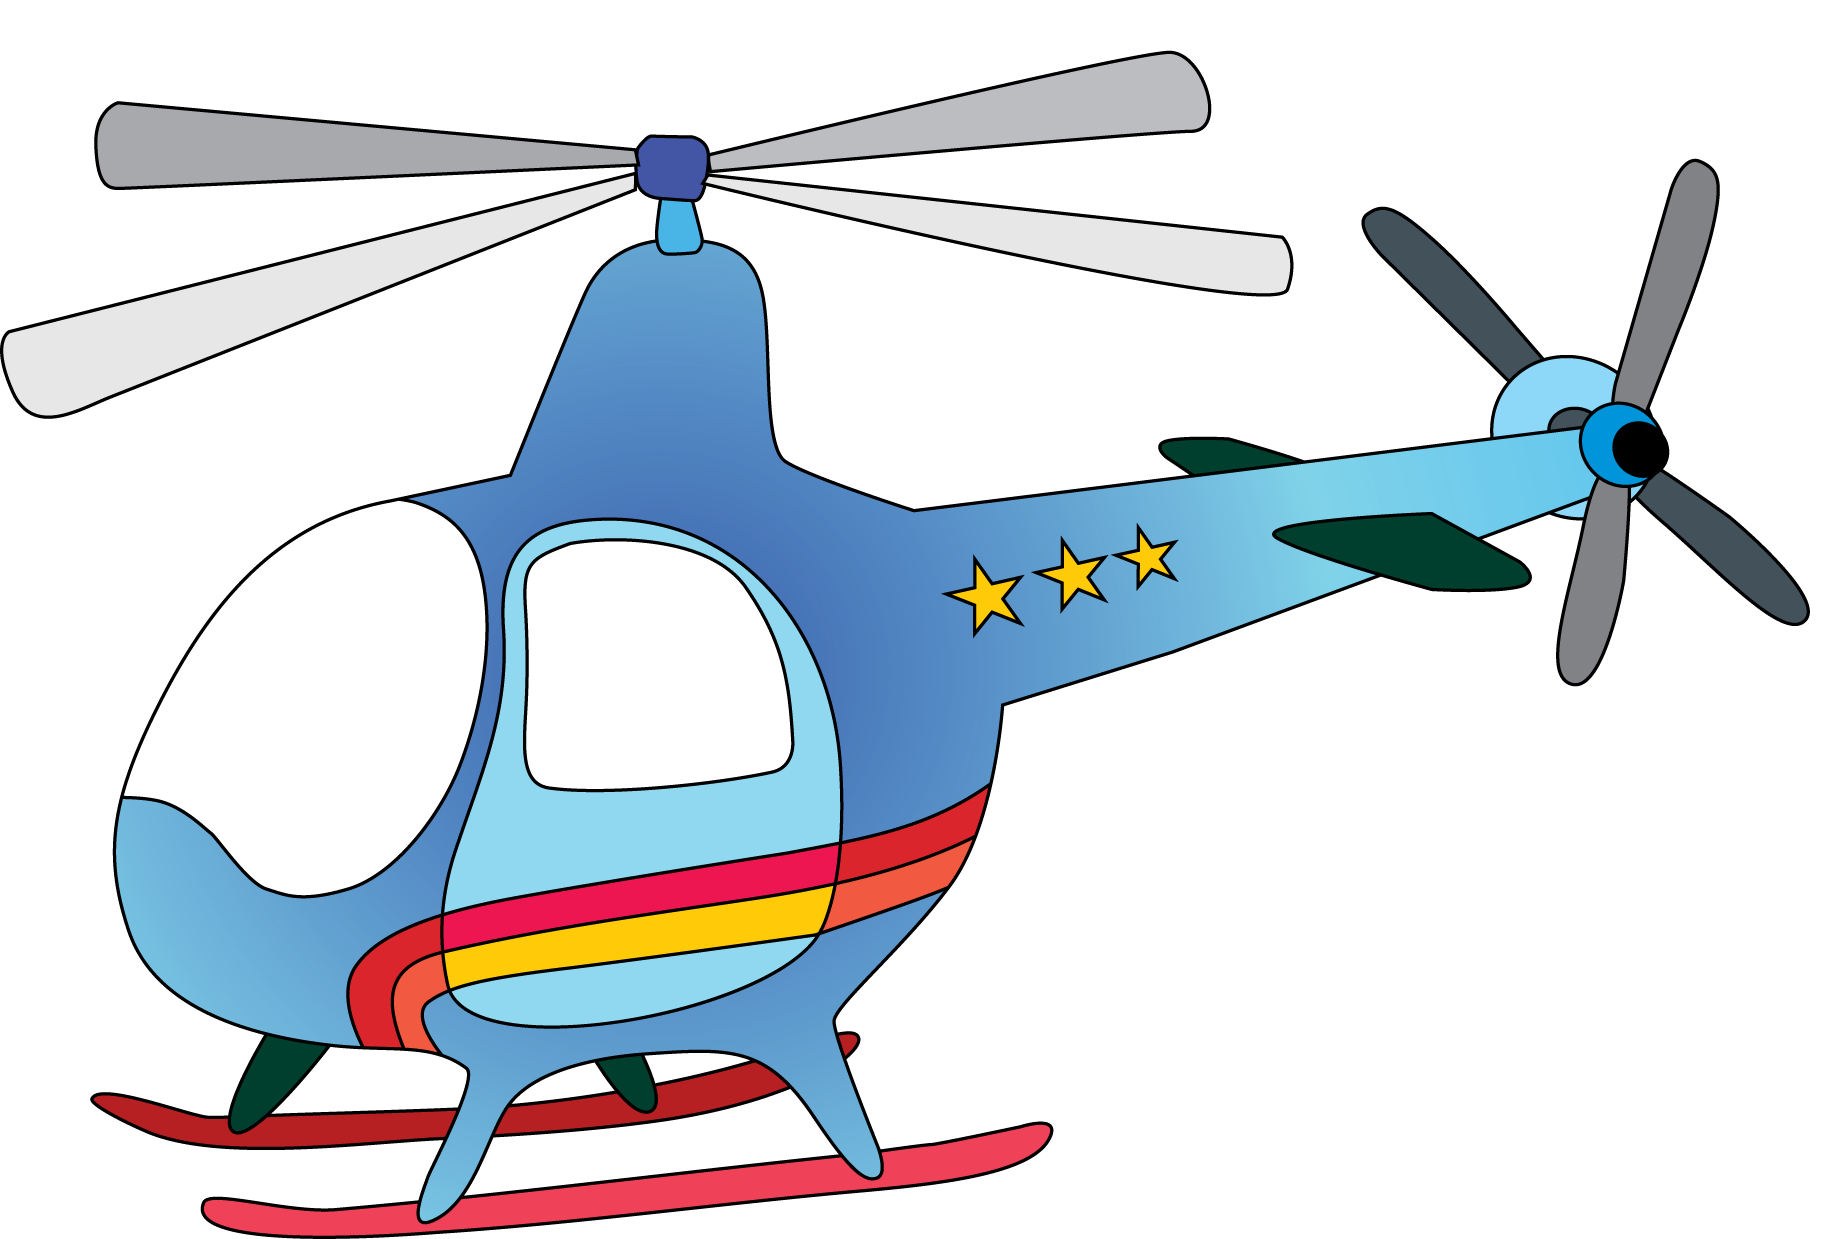 helicopter clipart police helicopter